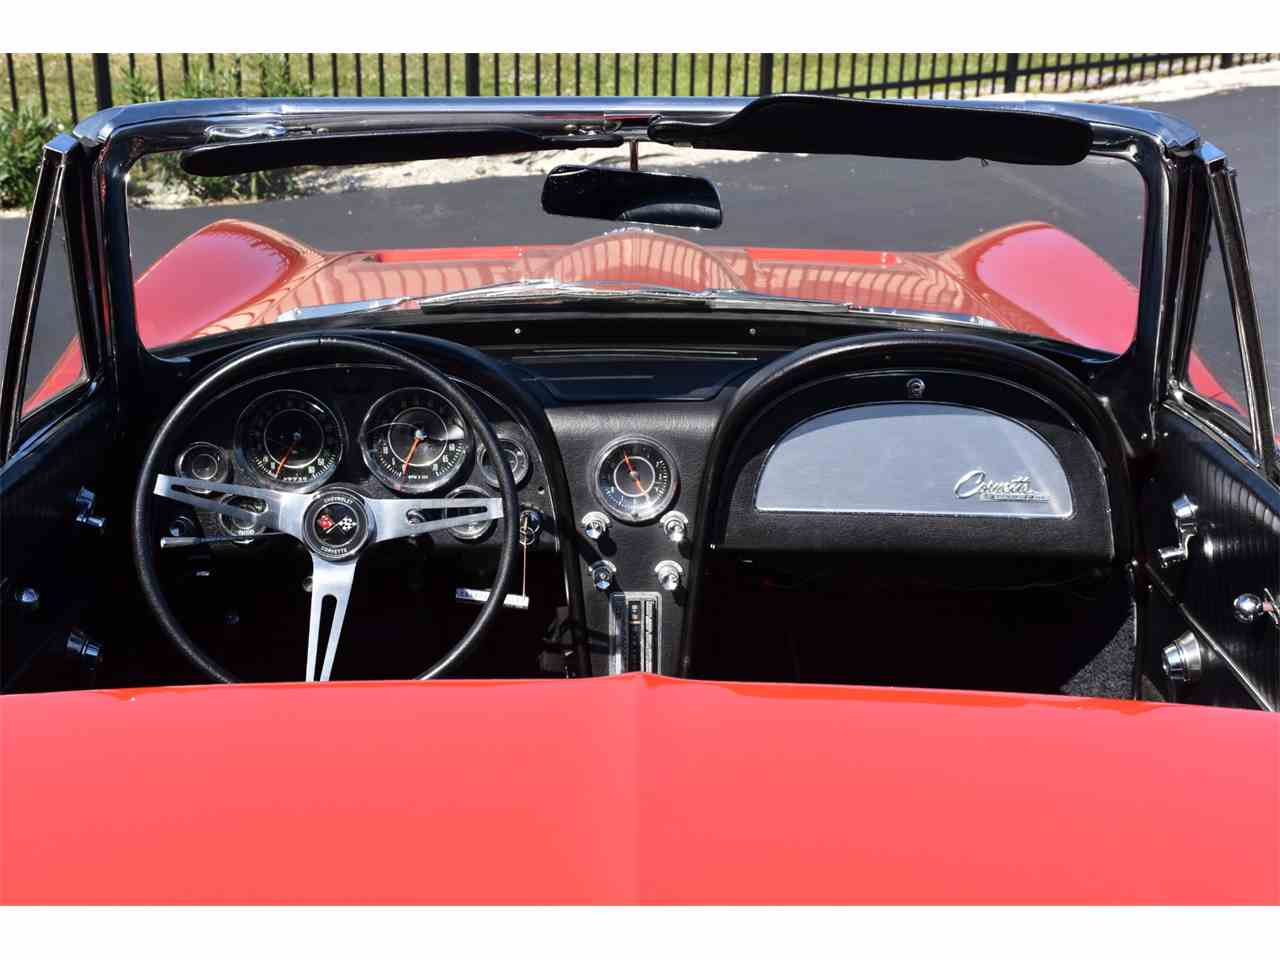 Large Picture of Classic 1964 Chevrolet Corvette located in Florida Auction Vehicle Offered by Ideal Classic Cars - MCOS